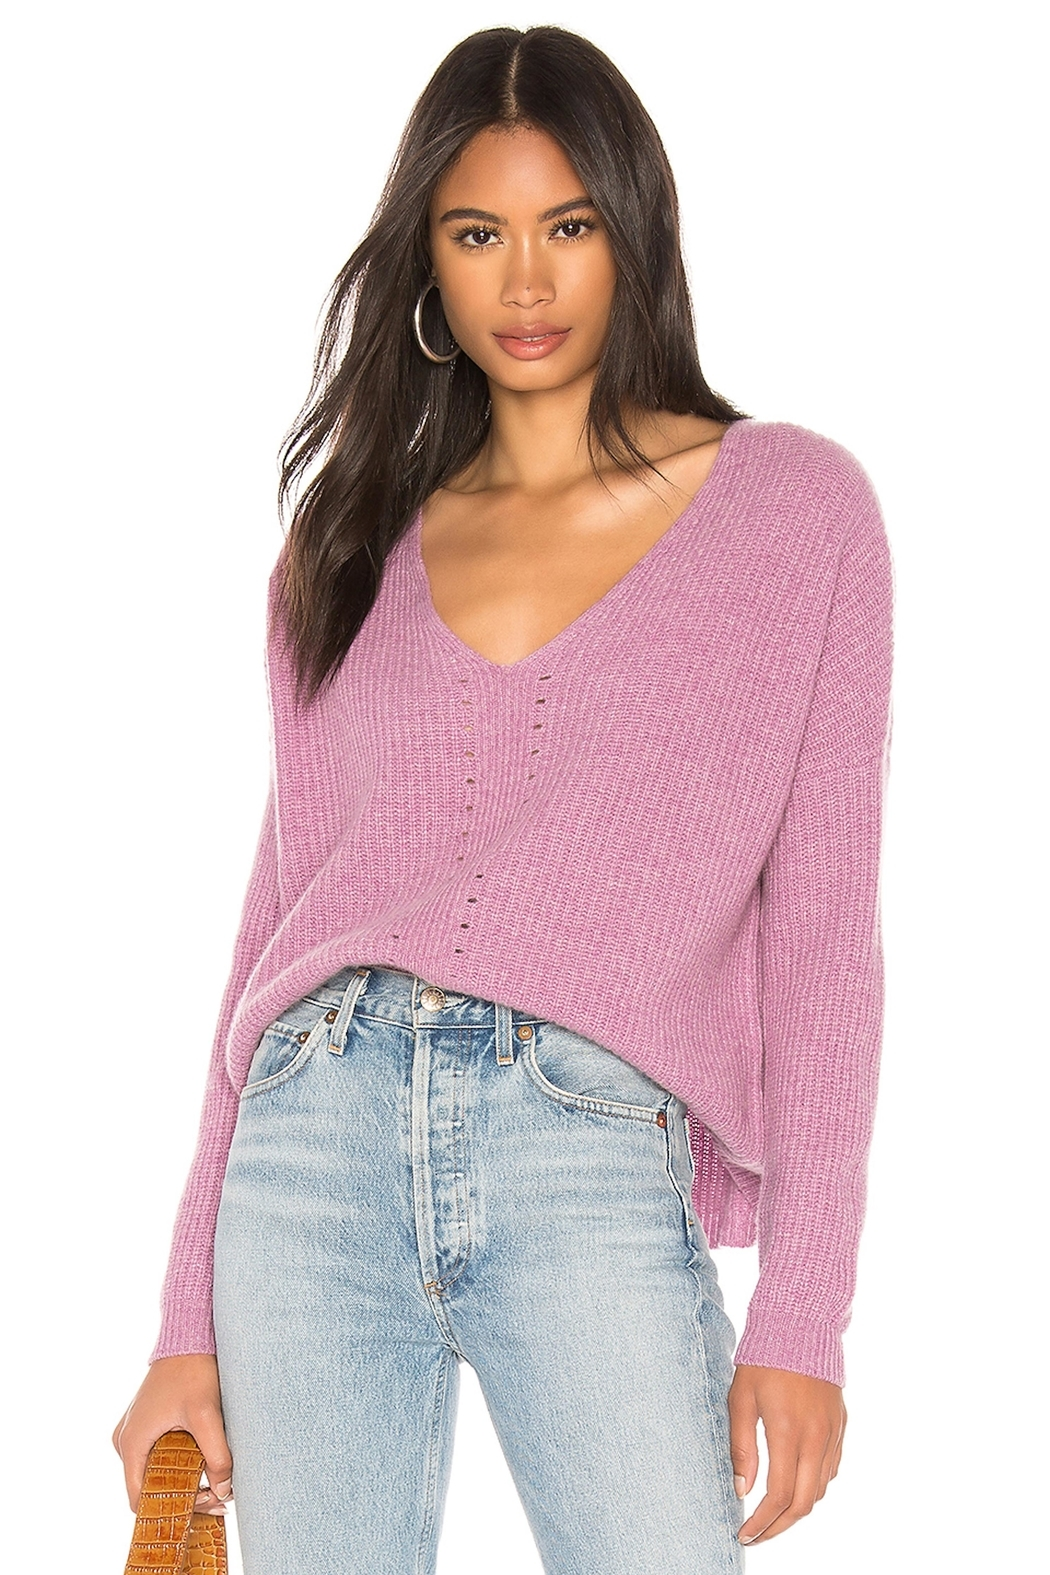 One Grey Day Paxton Pink Pullover - Main Image